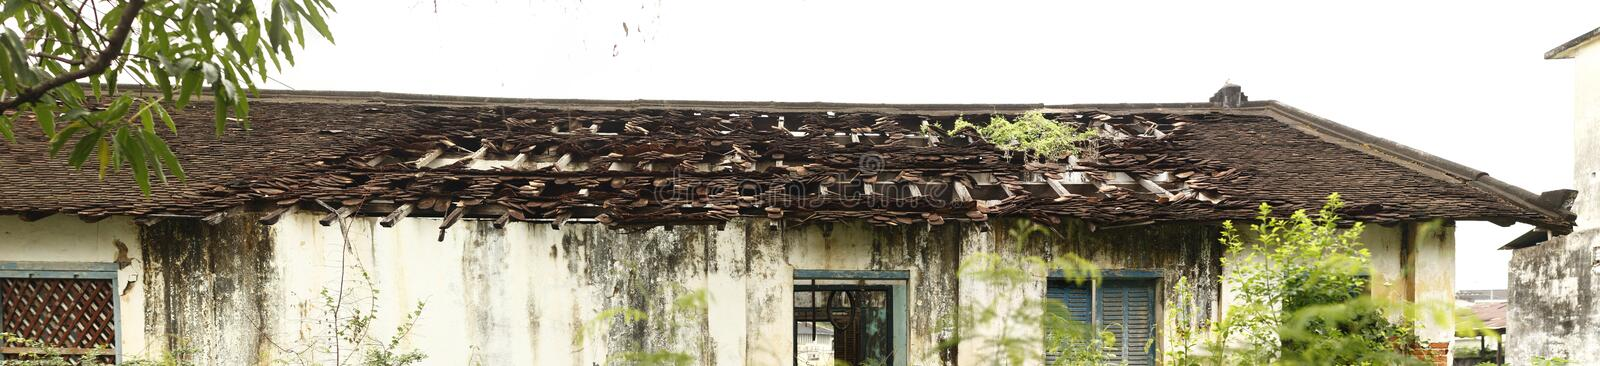 Panoramic view of a cracked, eroded and collapsed roof of an old home or shop in Laos stock photo